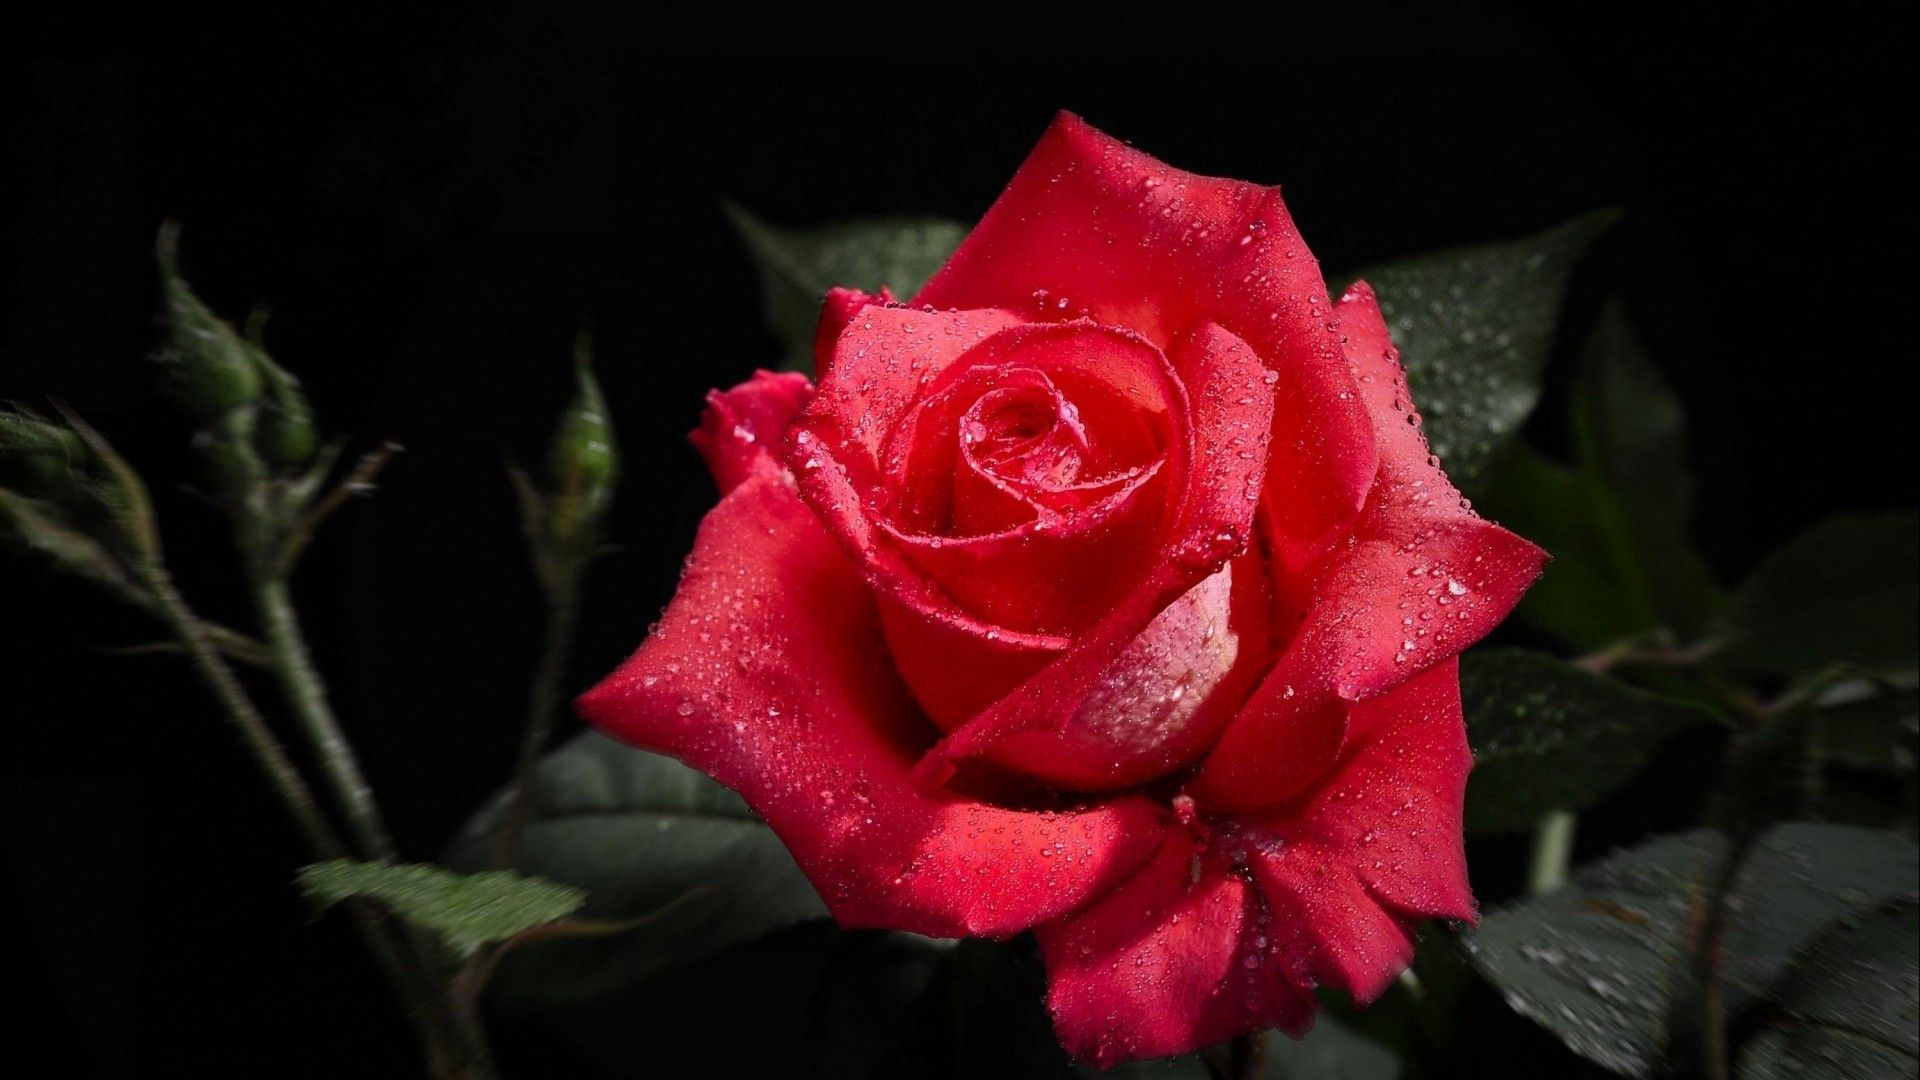 rose flower images hd wallpapers hd - Simply Wallpaper - Just ...